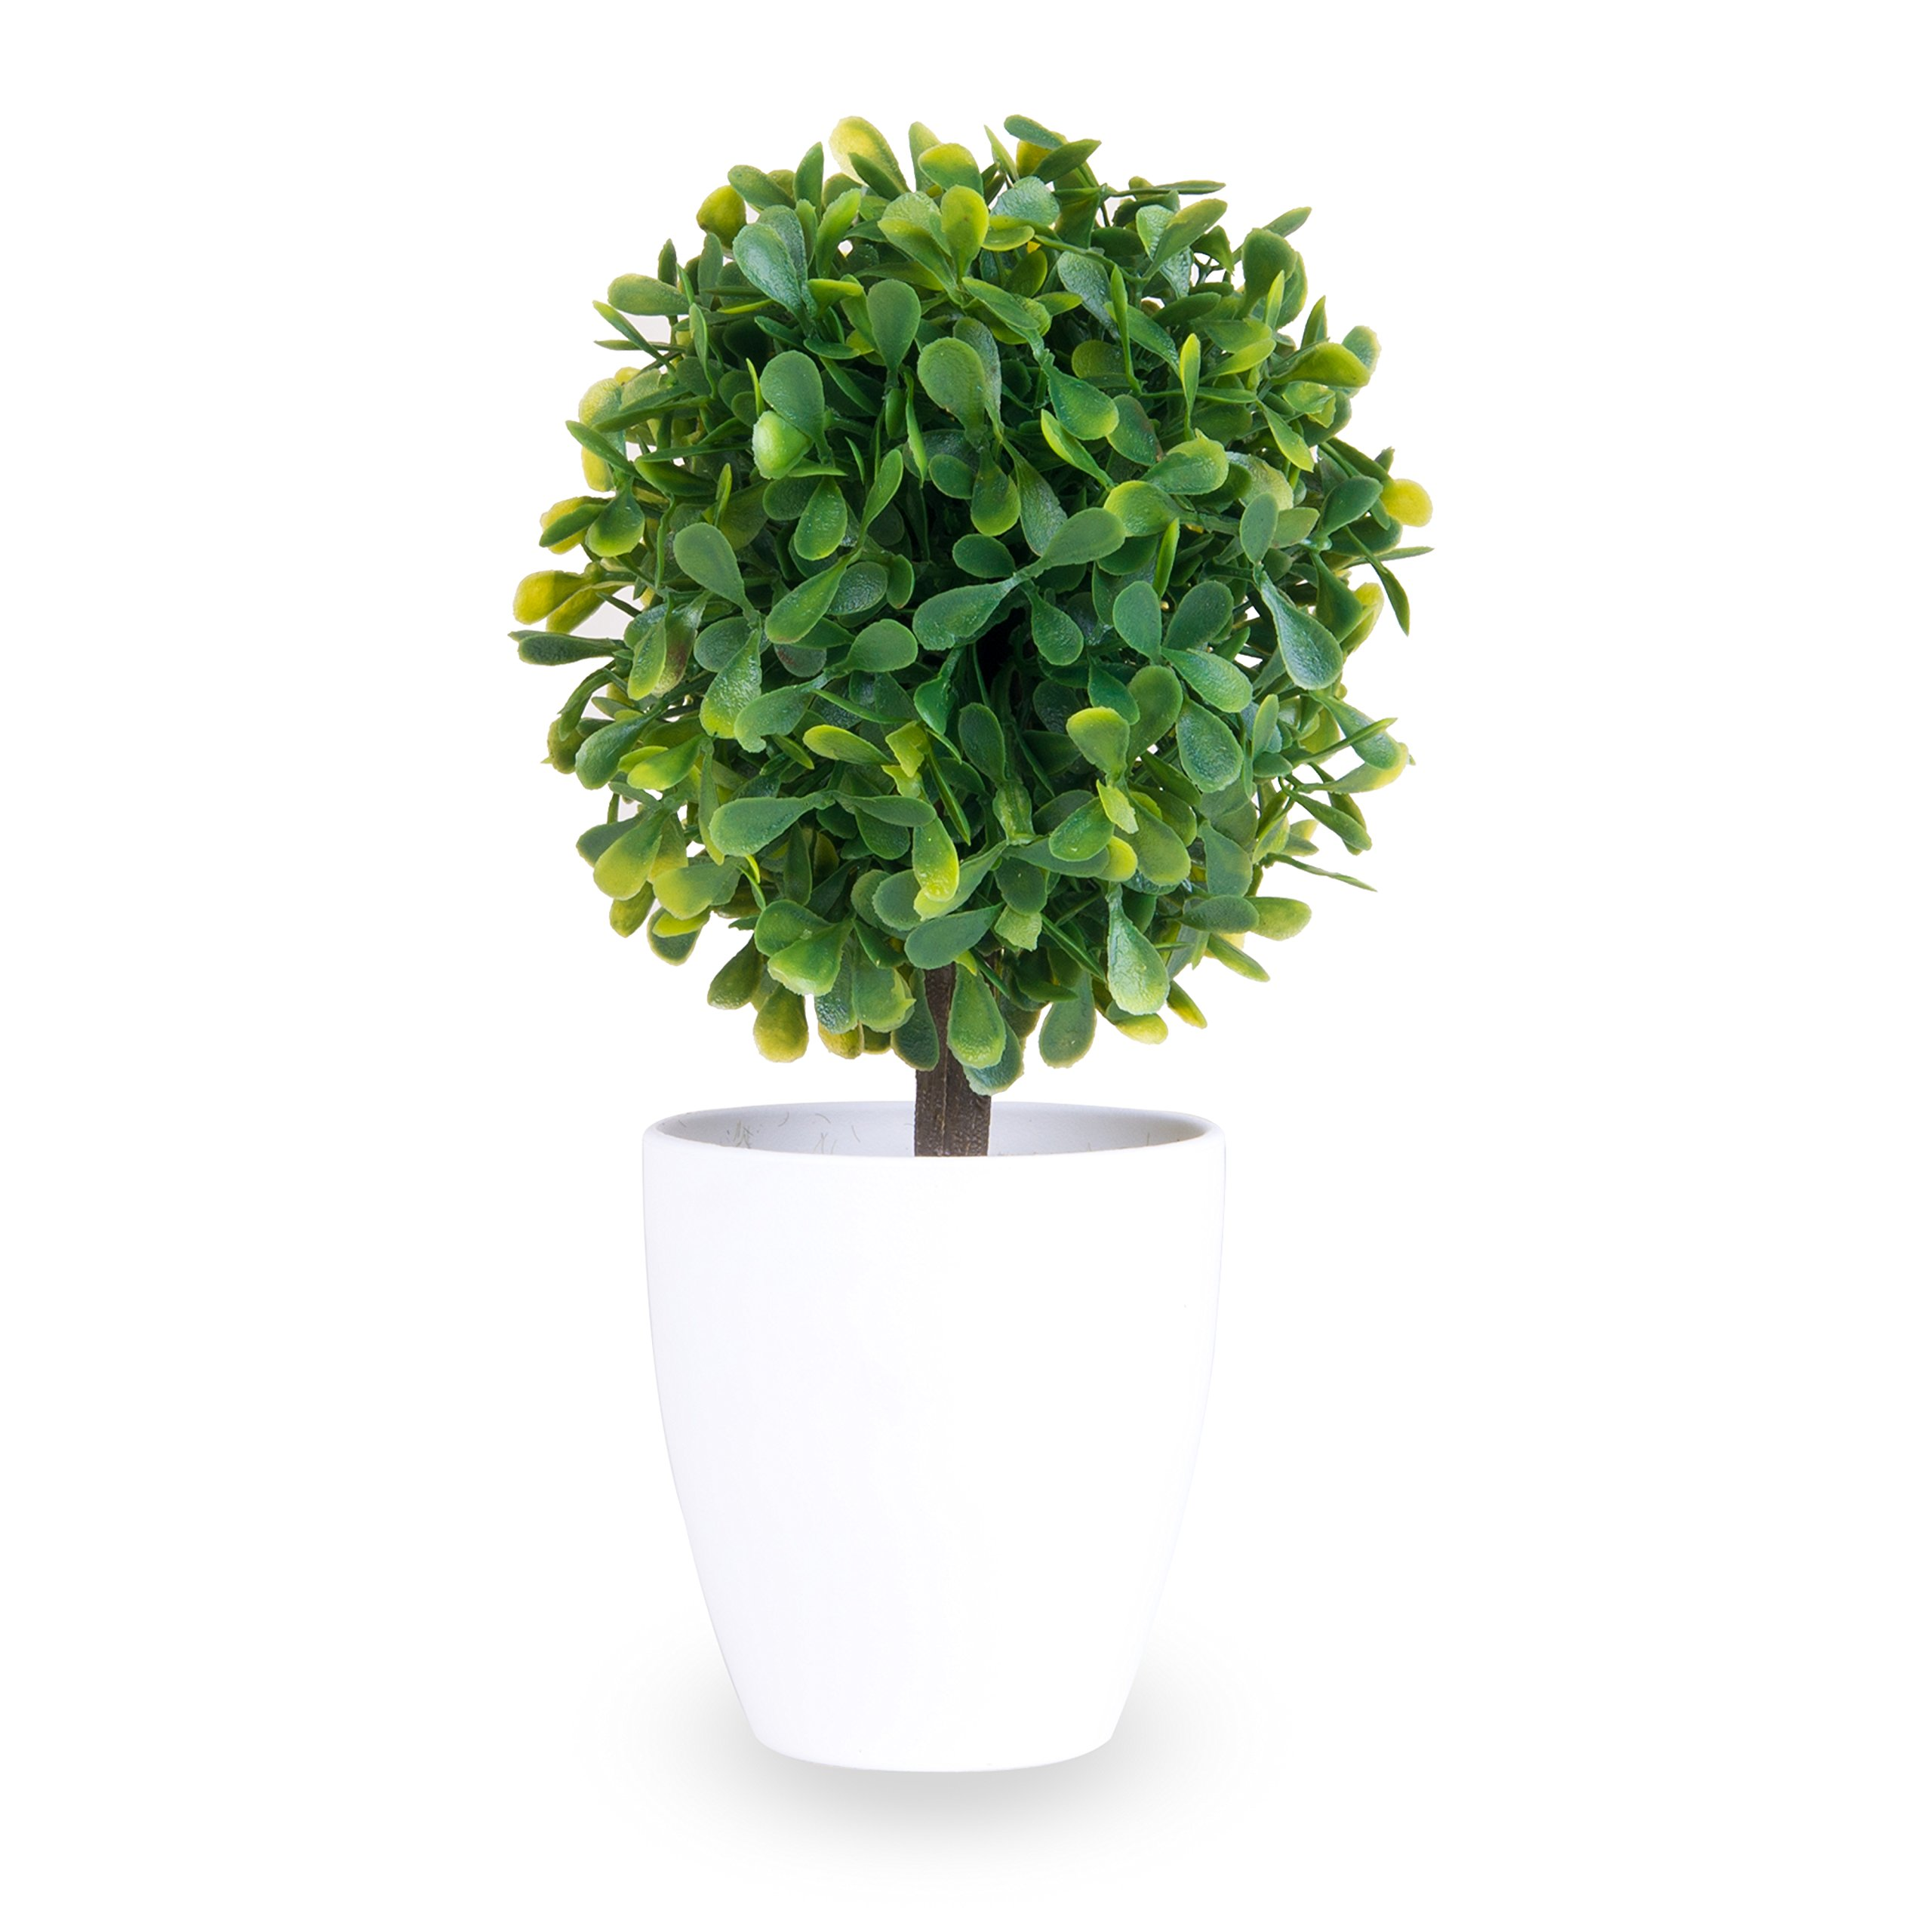 Fake Plant: artificial plant, for office, home, garage, patio, garden, work - Great for indoor and outdoor, made with plastic, green leaves, pottery, shrub, vine,